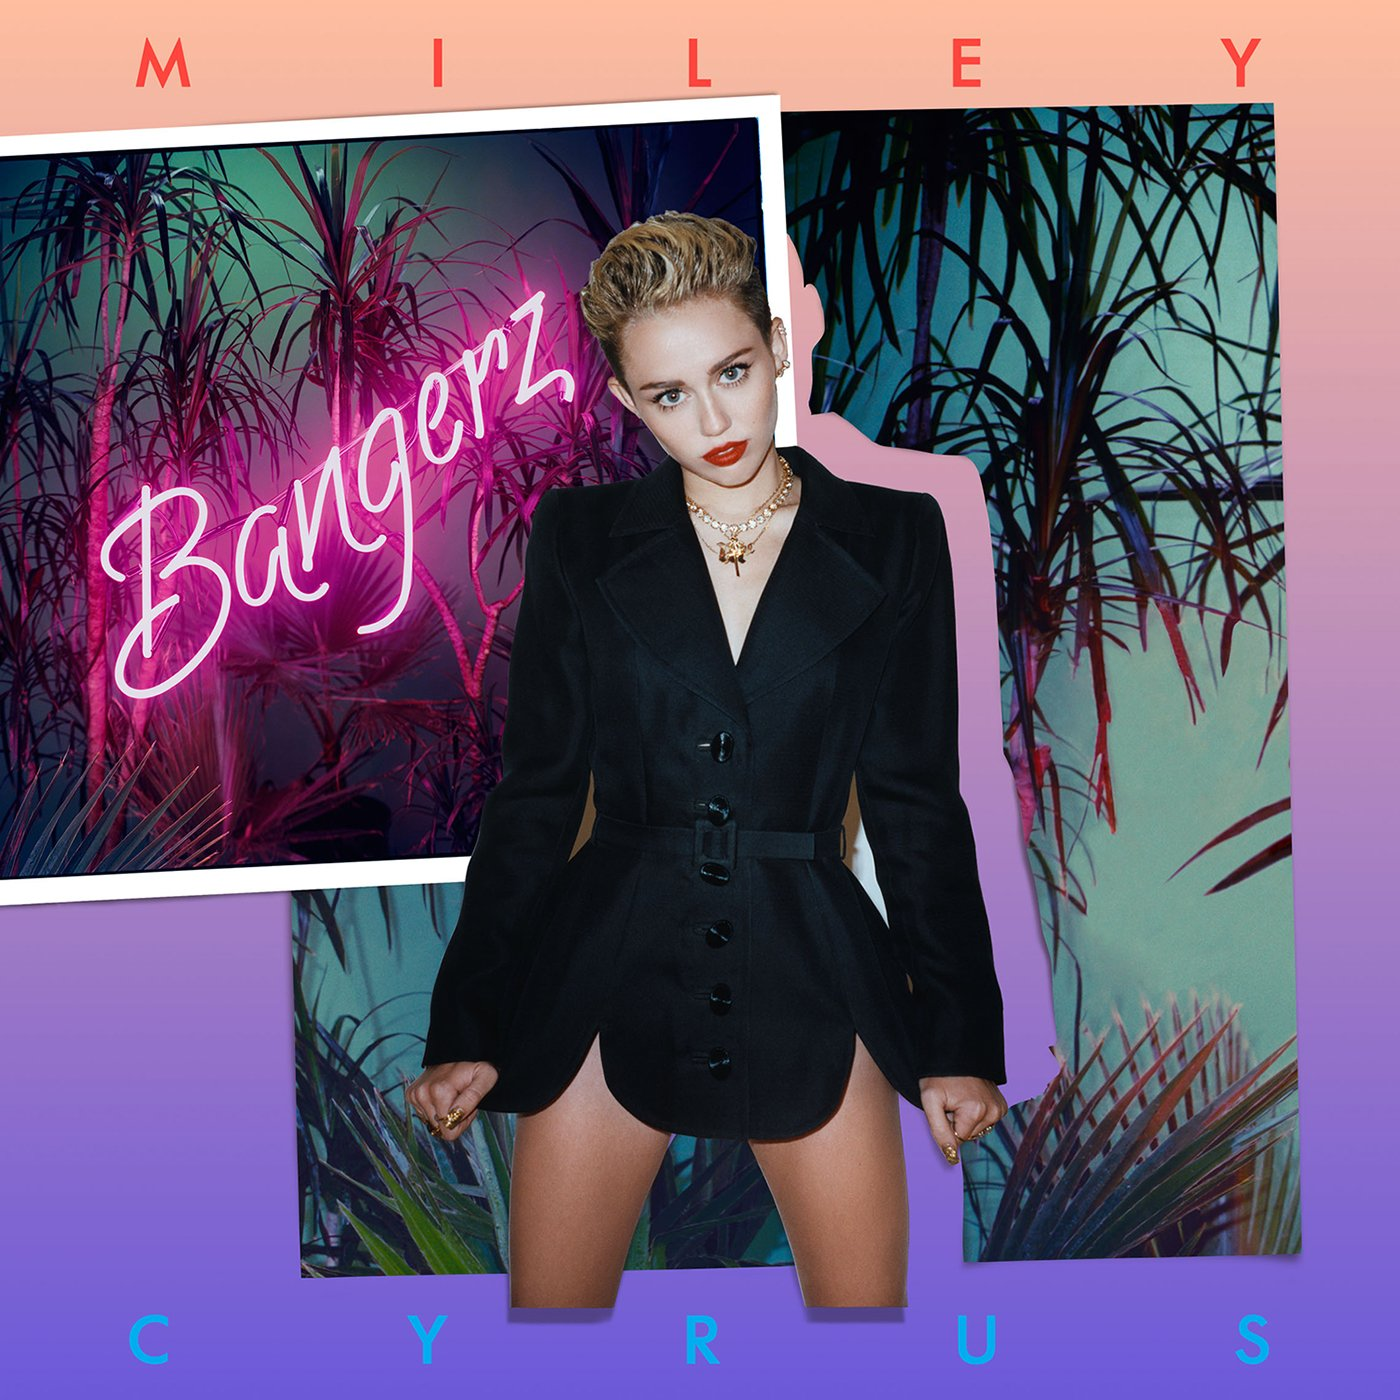 Miley Cyrus Bangerz Deluxe Bangerz by Miley Cyrus